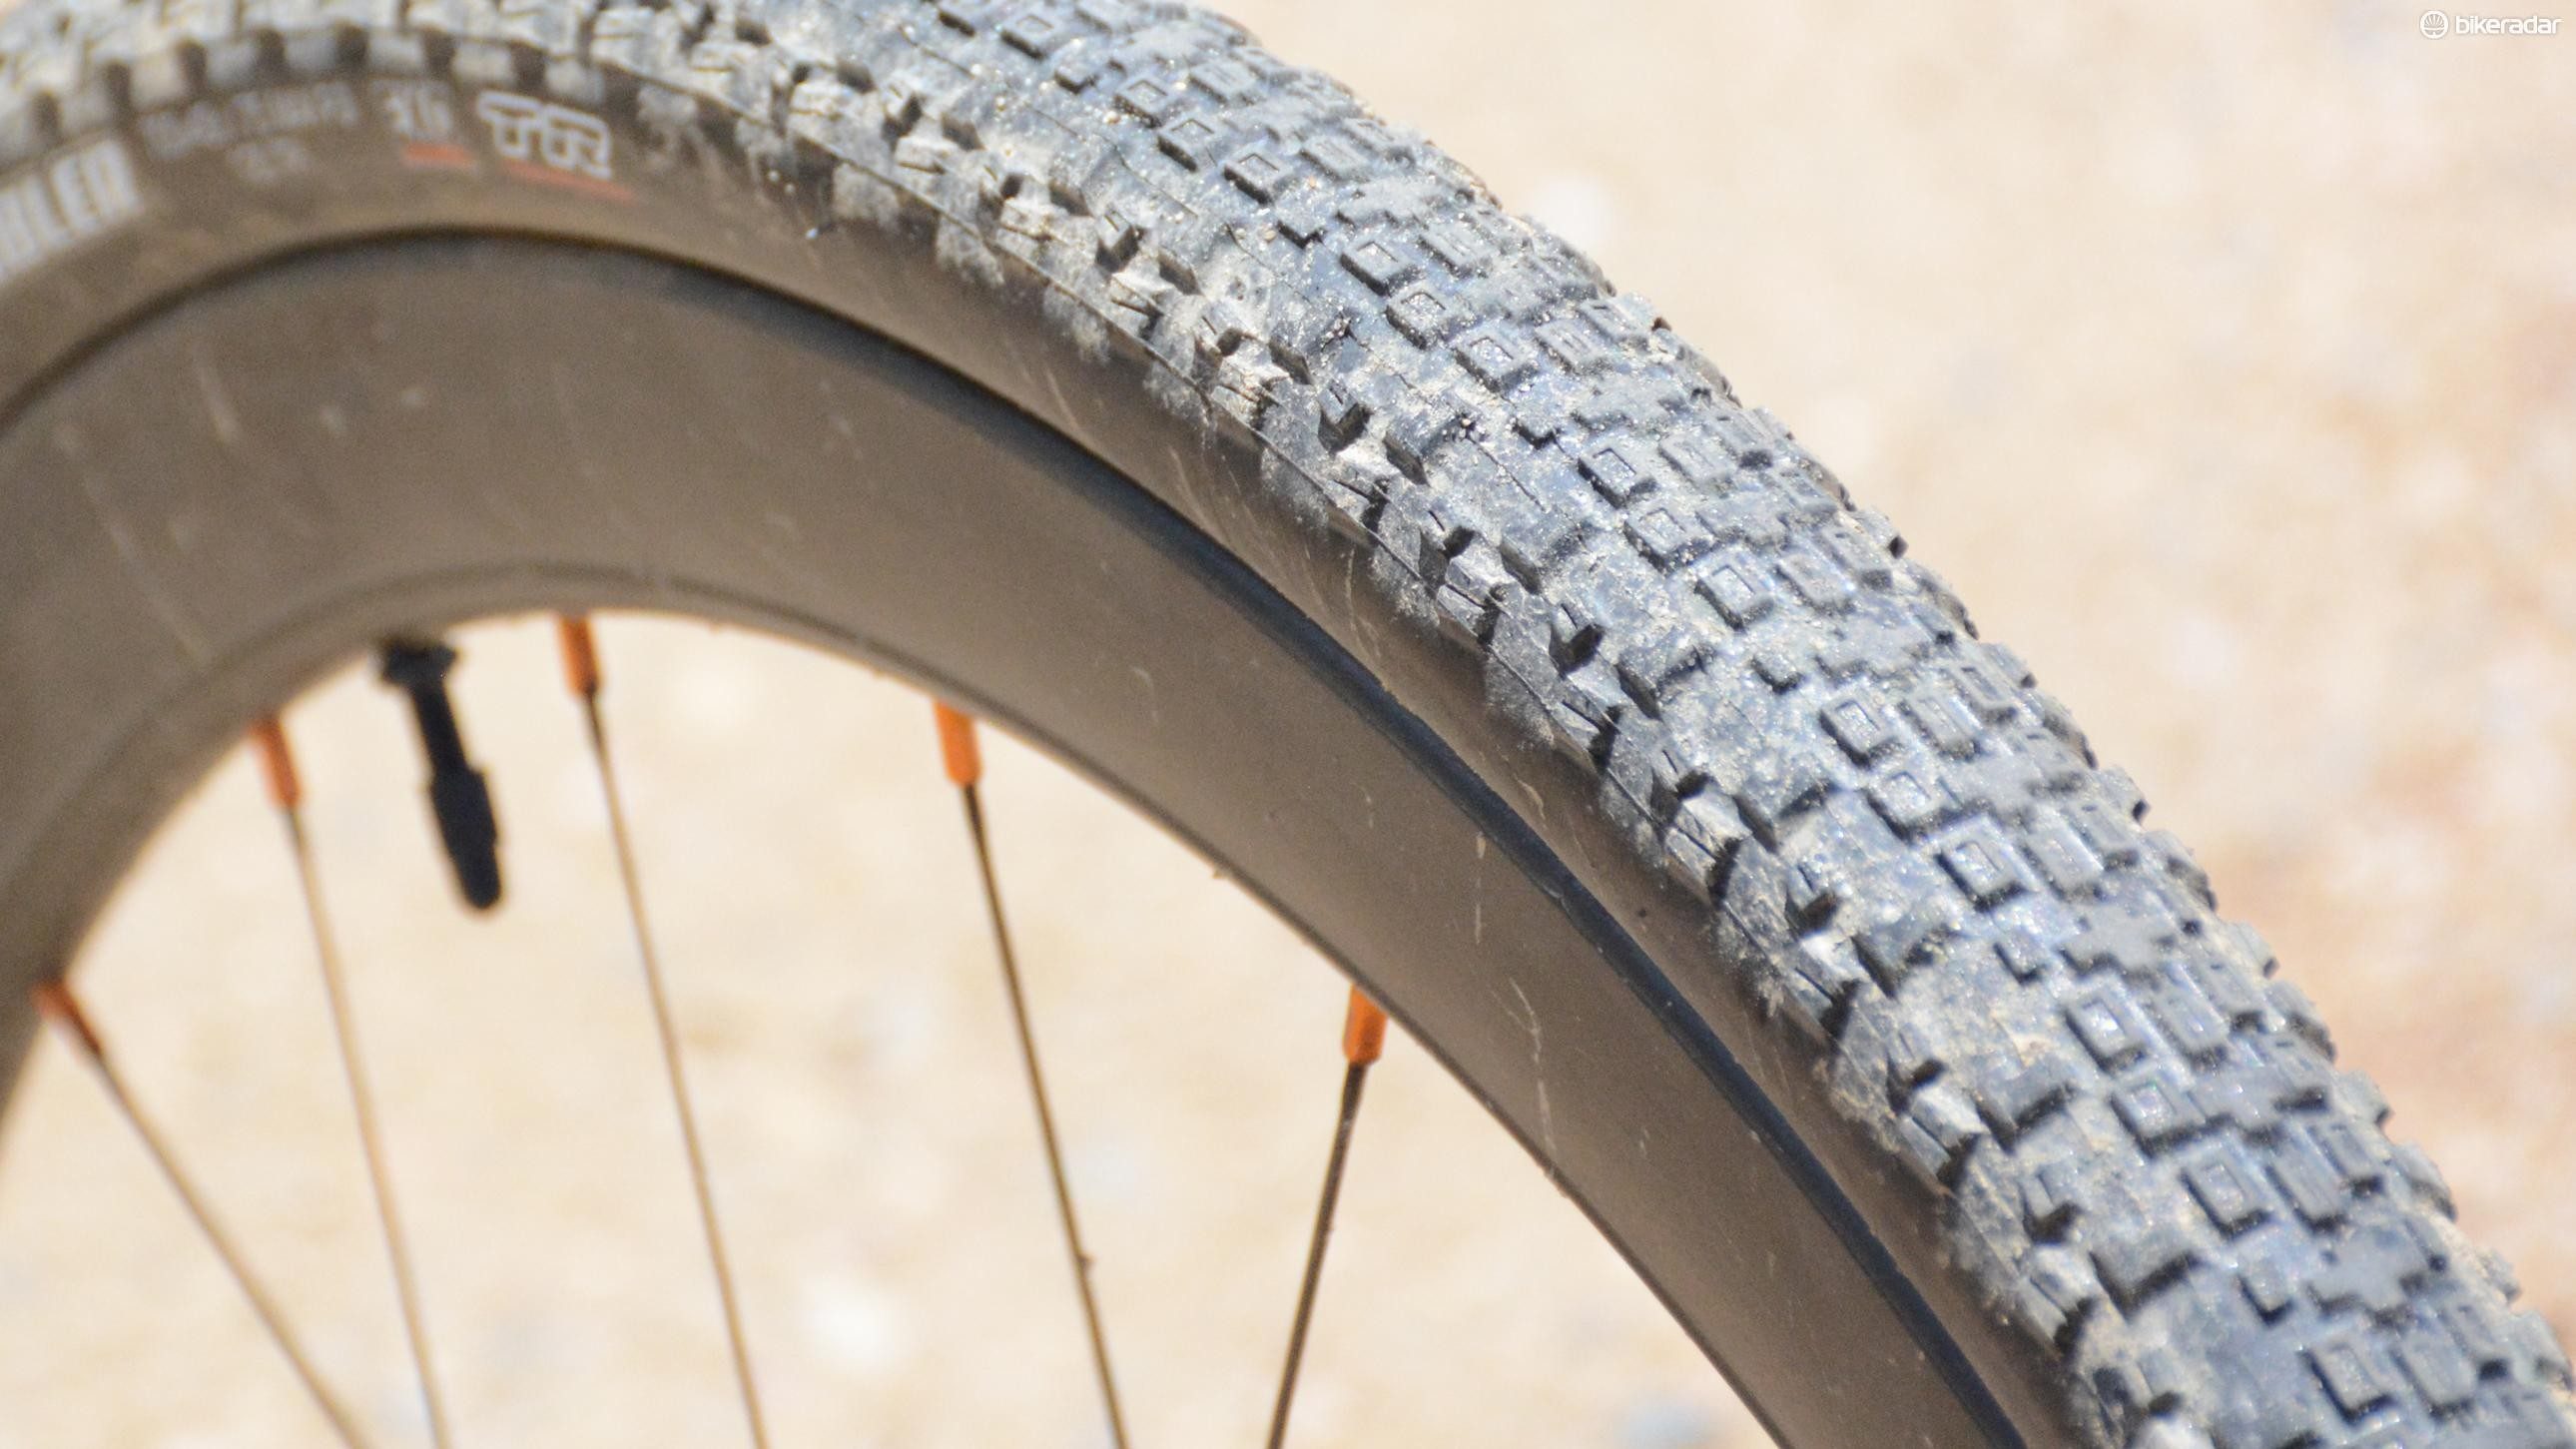 The tread features a tight center row for speed with spaced knobs for a bit of cornering bite